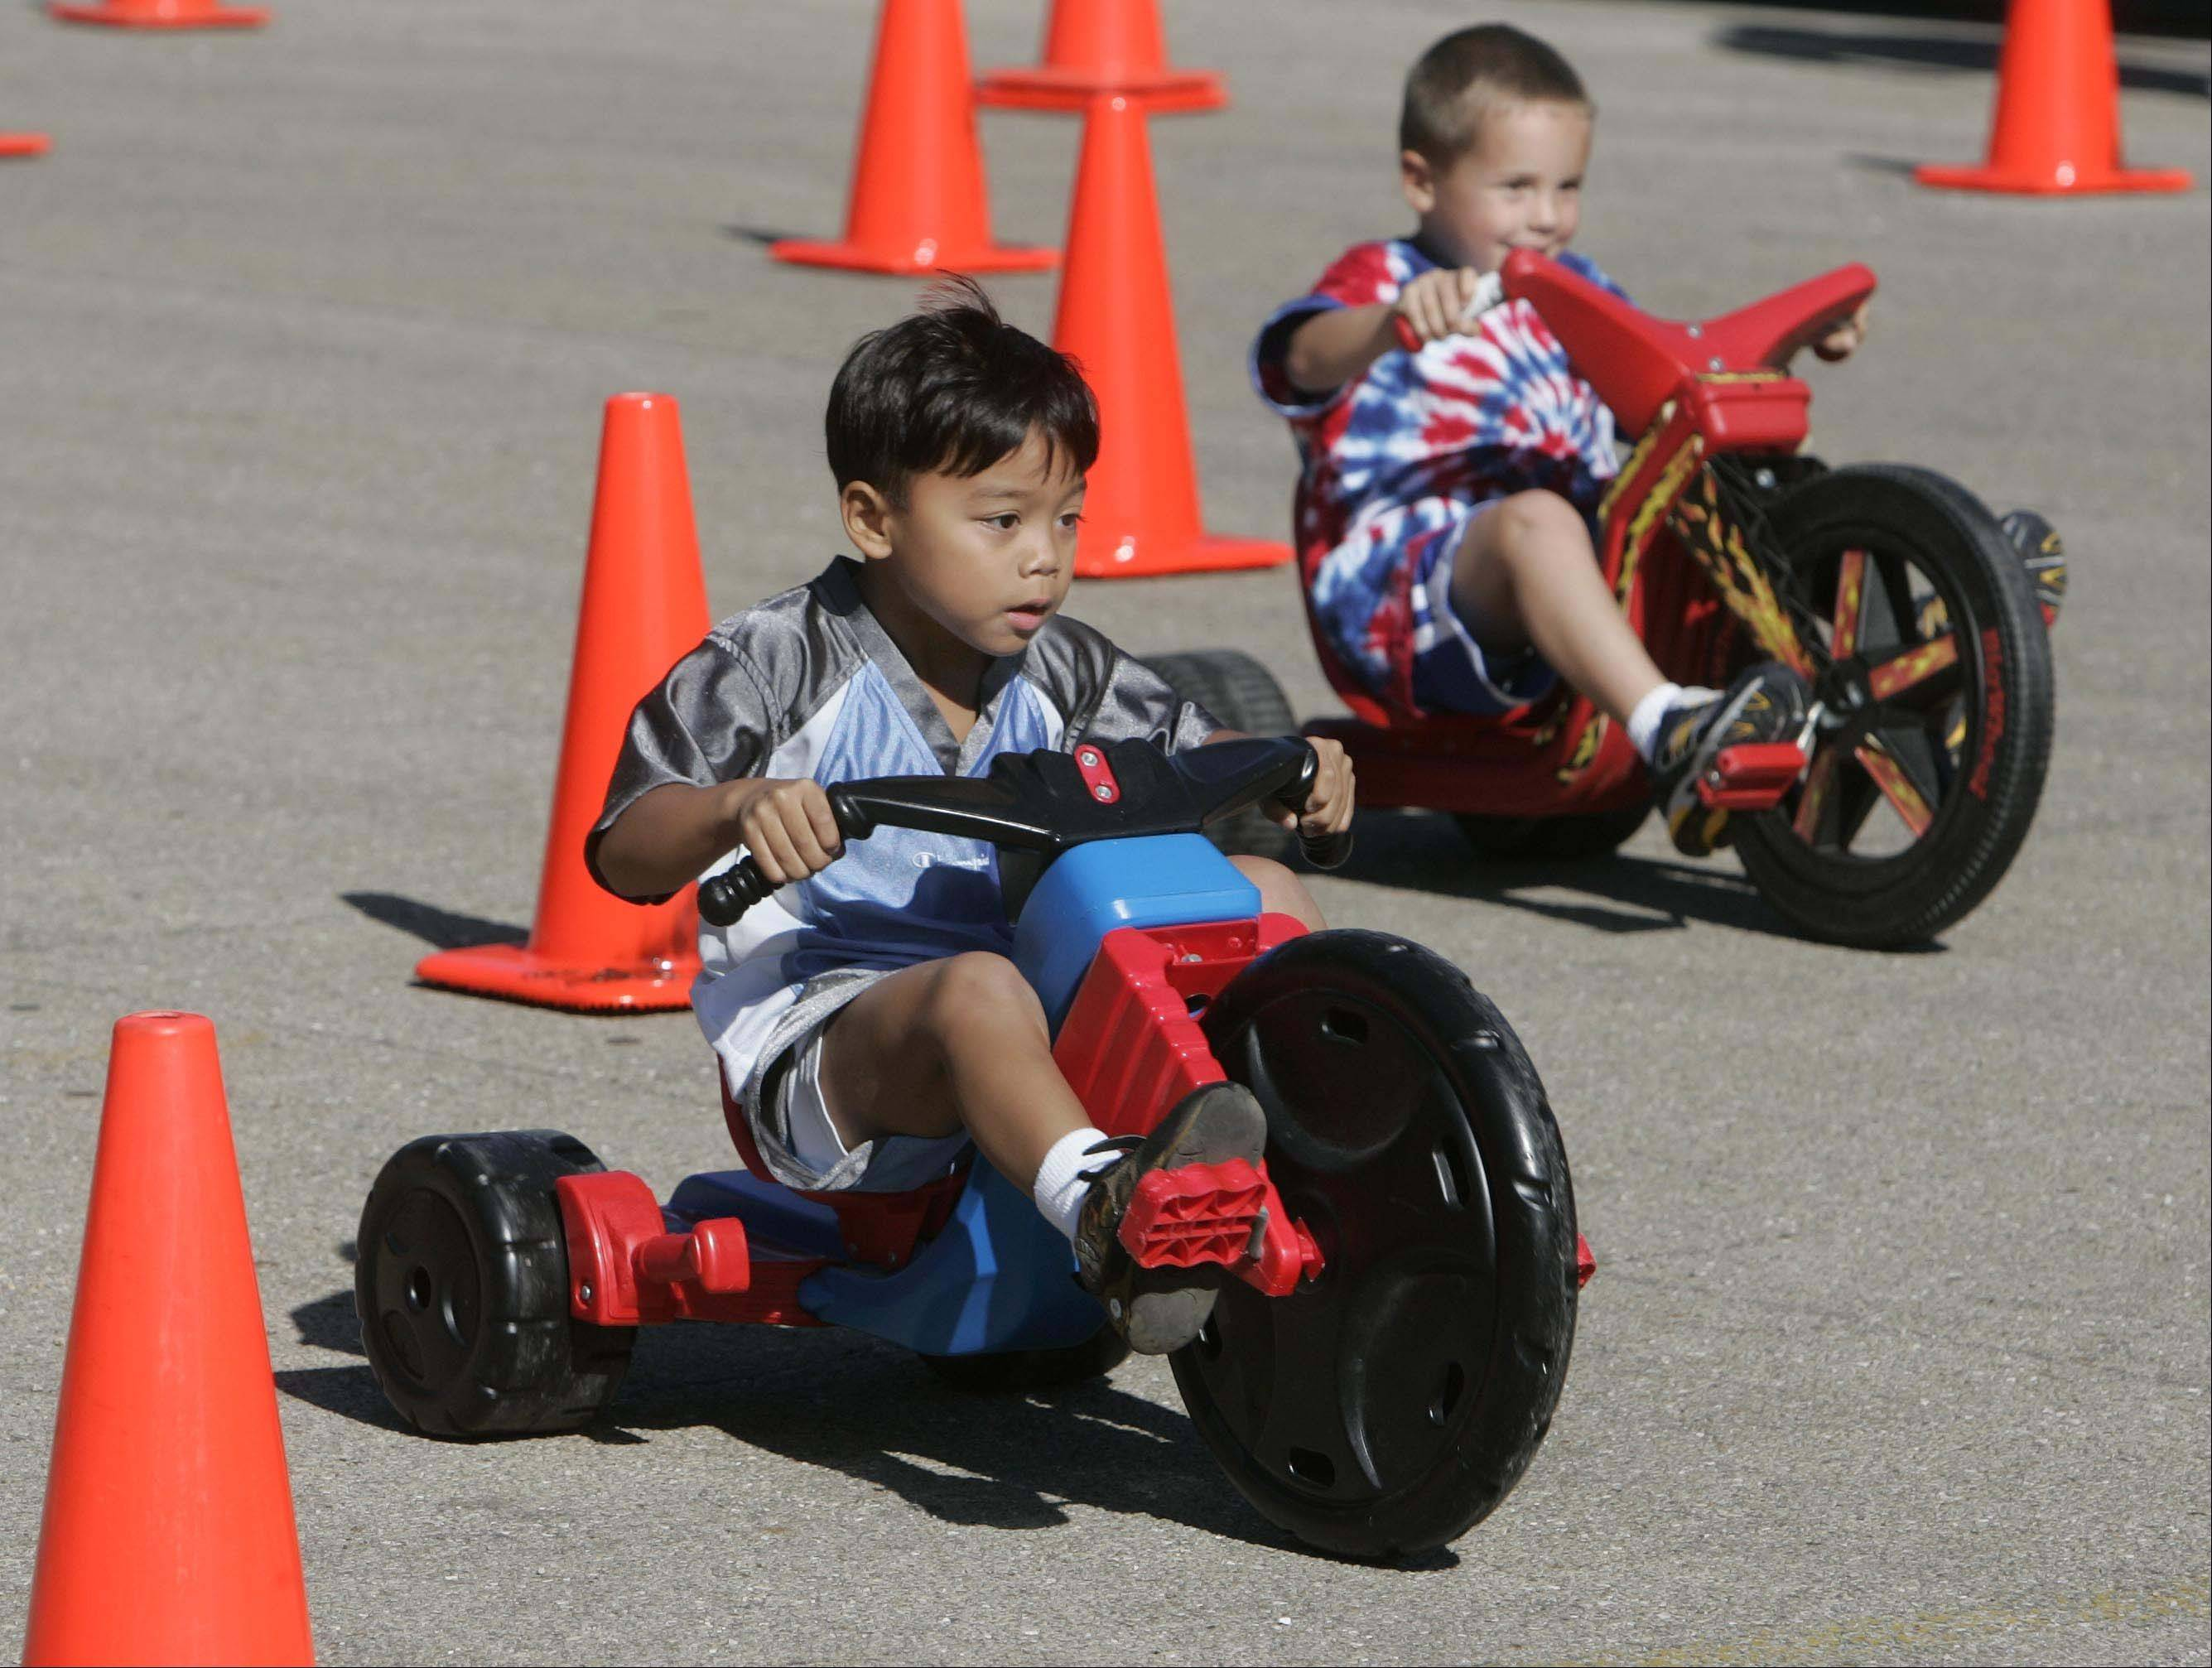 Big Wheel races, bed races, a diaper derby and several eating contests are among quirky competitions to be offered at the Naperville Jaycees' annual Last Fling from Friday to Monday.